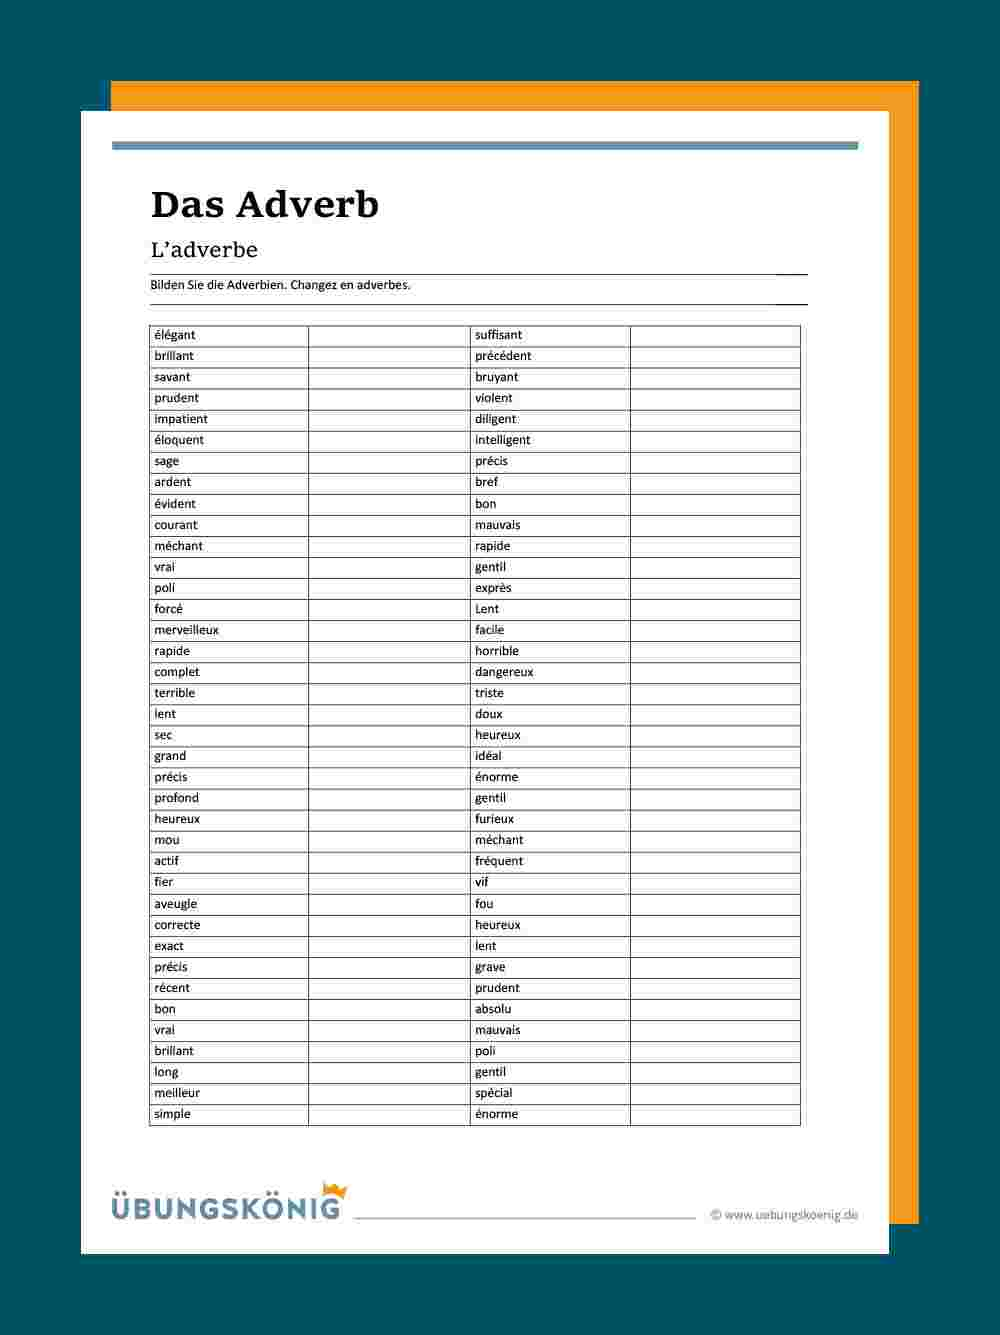 Adverb A Super Simple Guide To Adverbs With